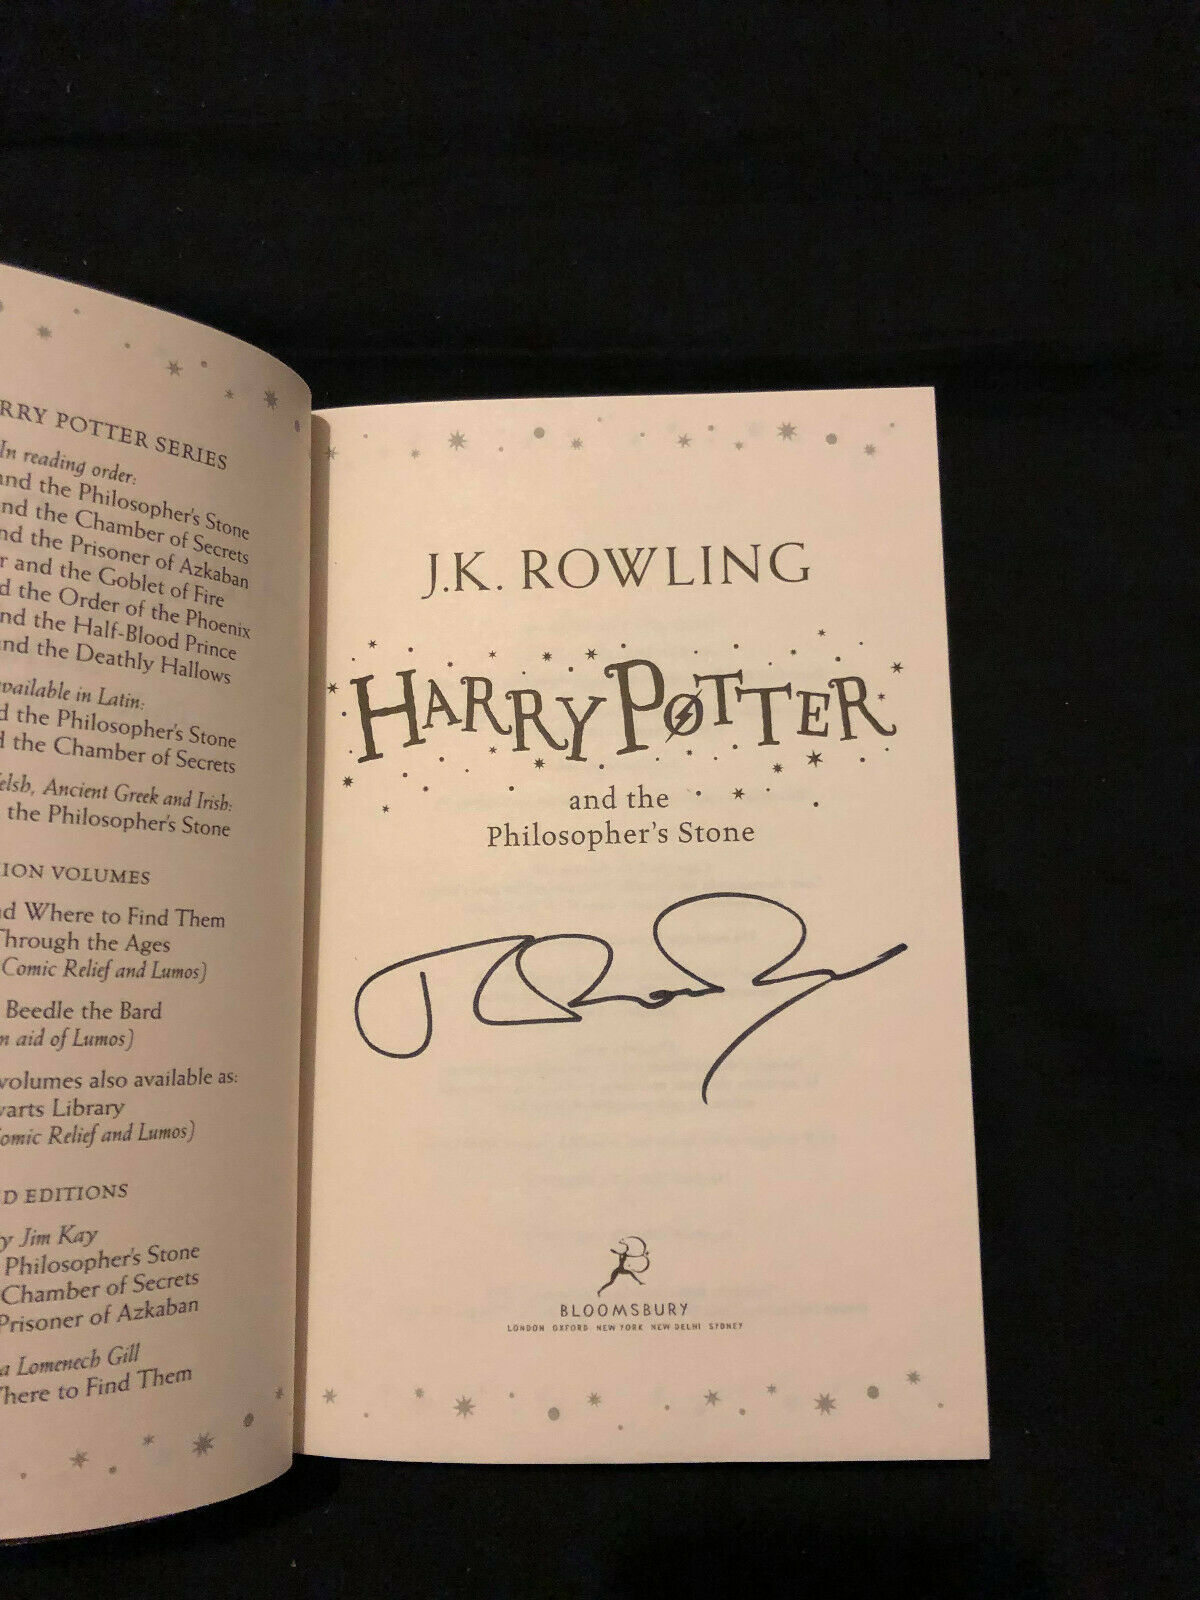 J.K. Rowling Forgery found on eBay inside a later edition Harry Potter and the Philosopher's Stone.